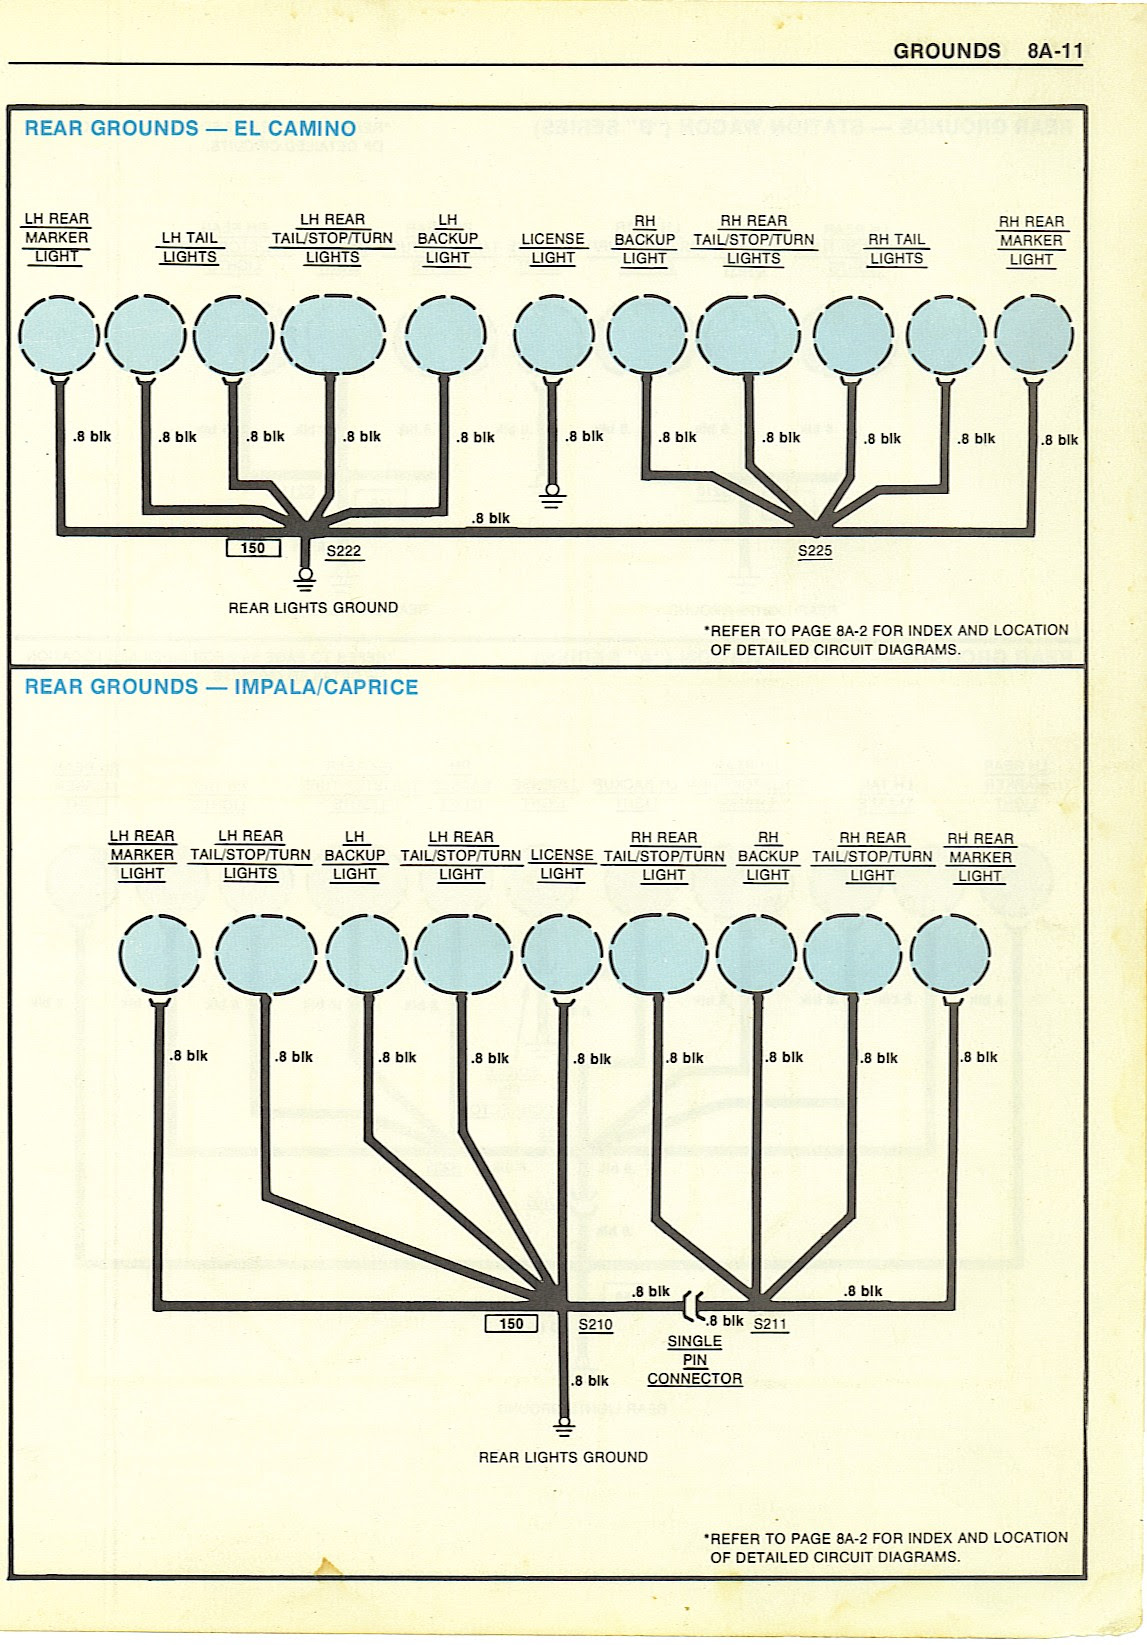 Diagram El Camino Wiring Diagram Grounds Full Version Hd Quality Diagram Grounds Jdpre Wiringl Ripettapalace It